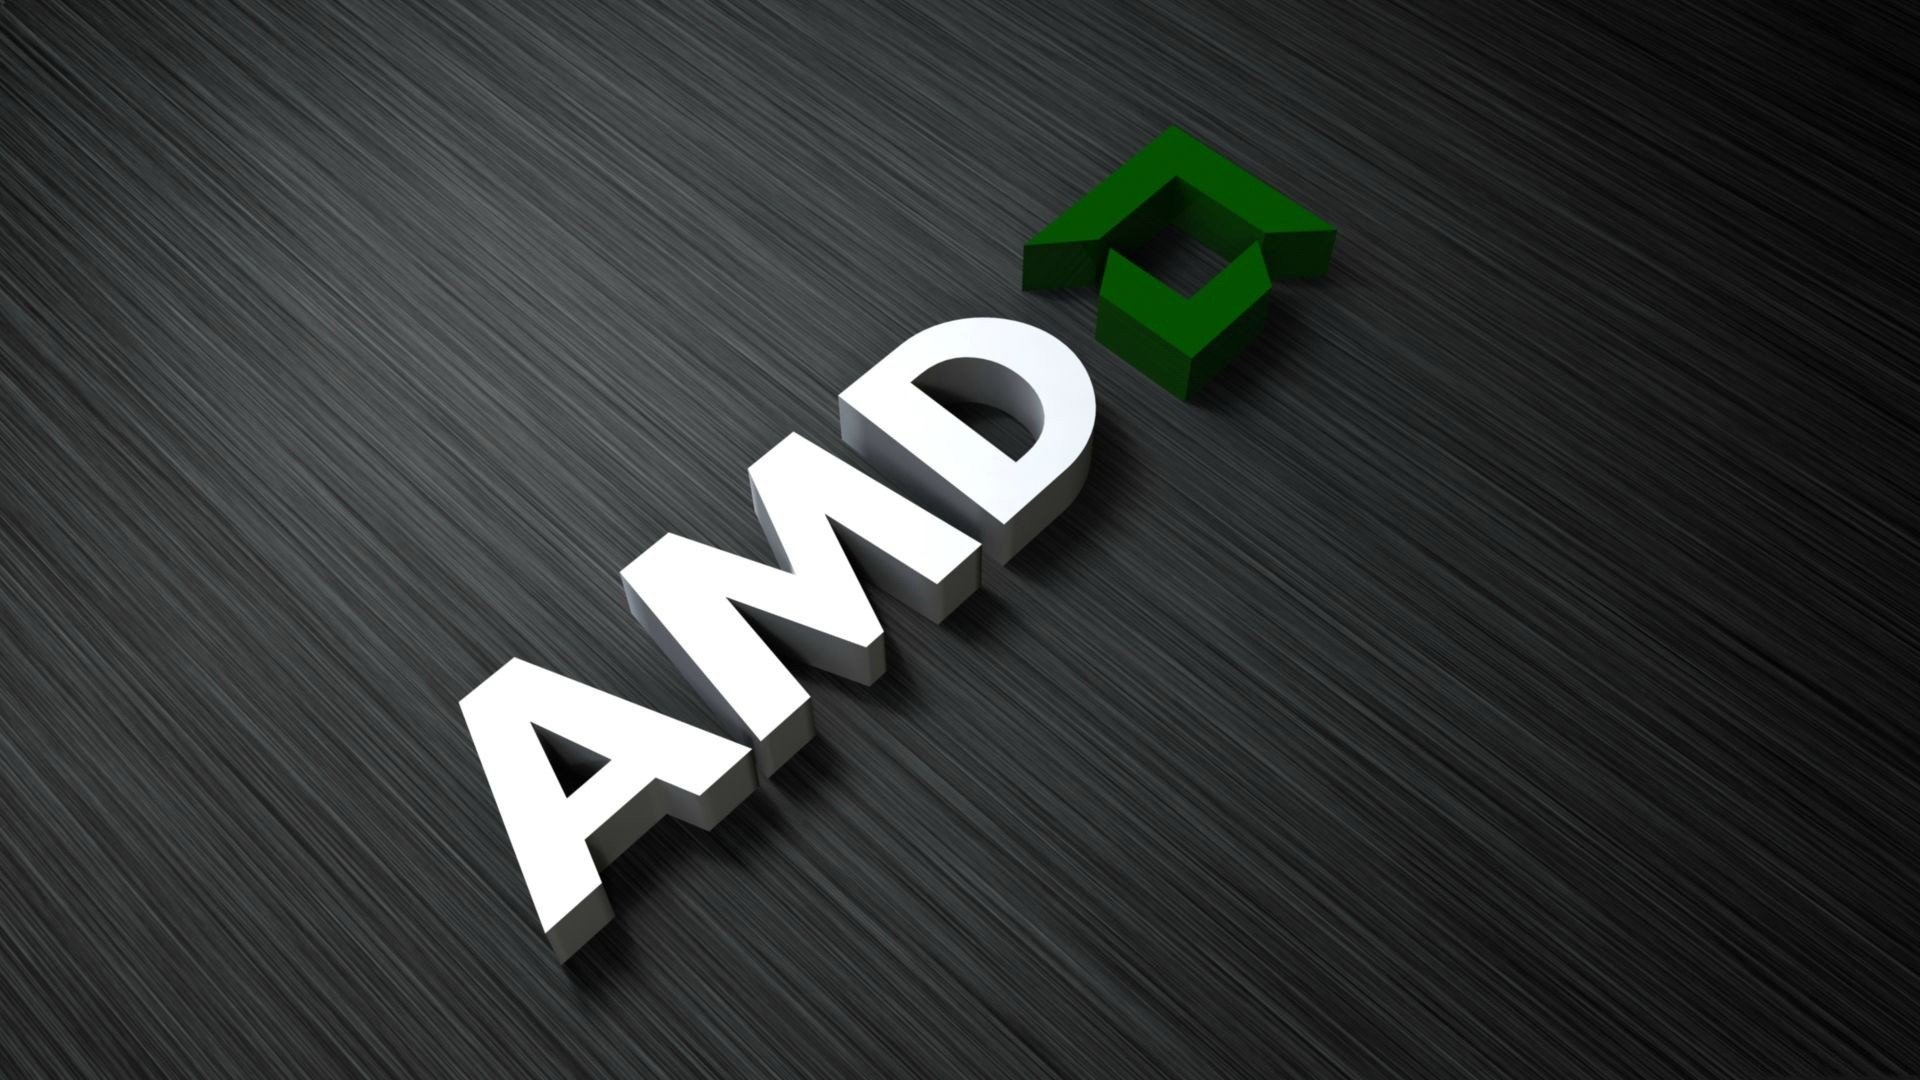 amd wallpapers teamstealth - photo #21